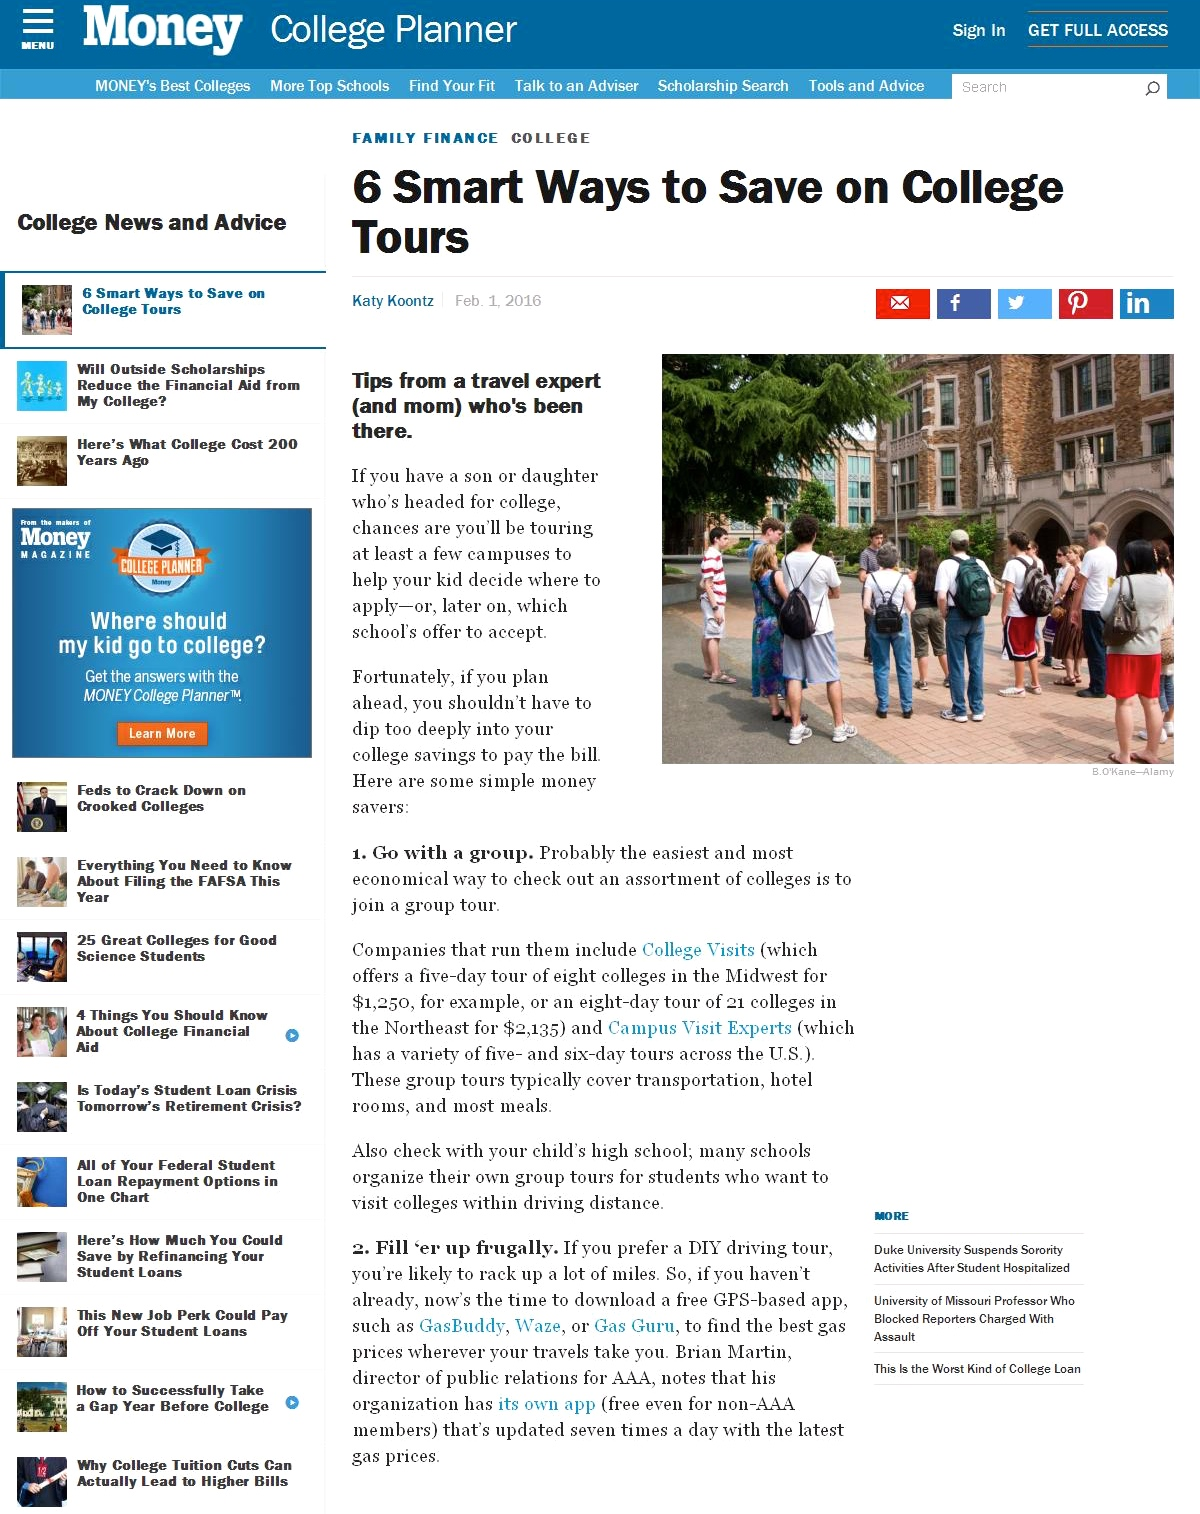 6 Smart Ways to Save on College Tours